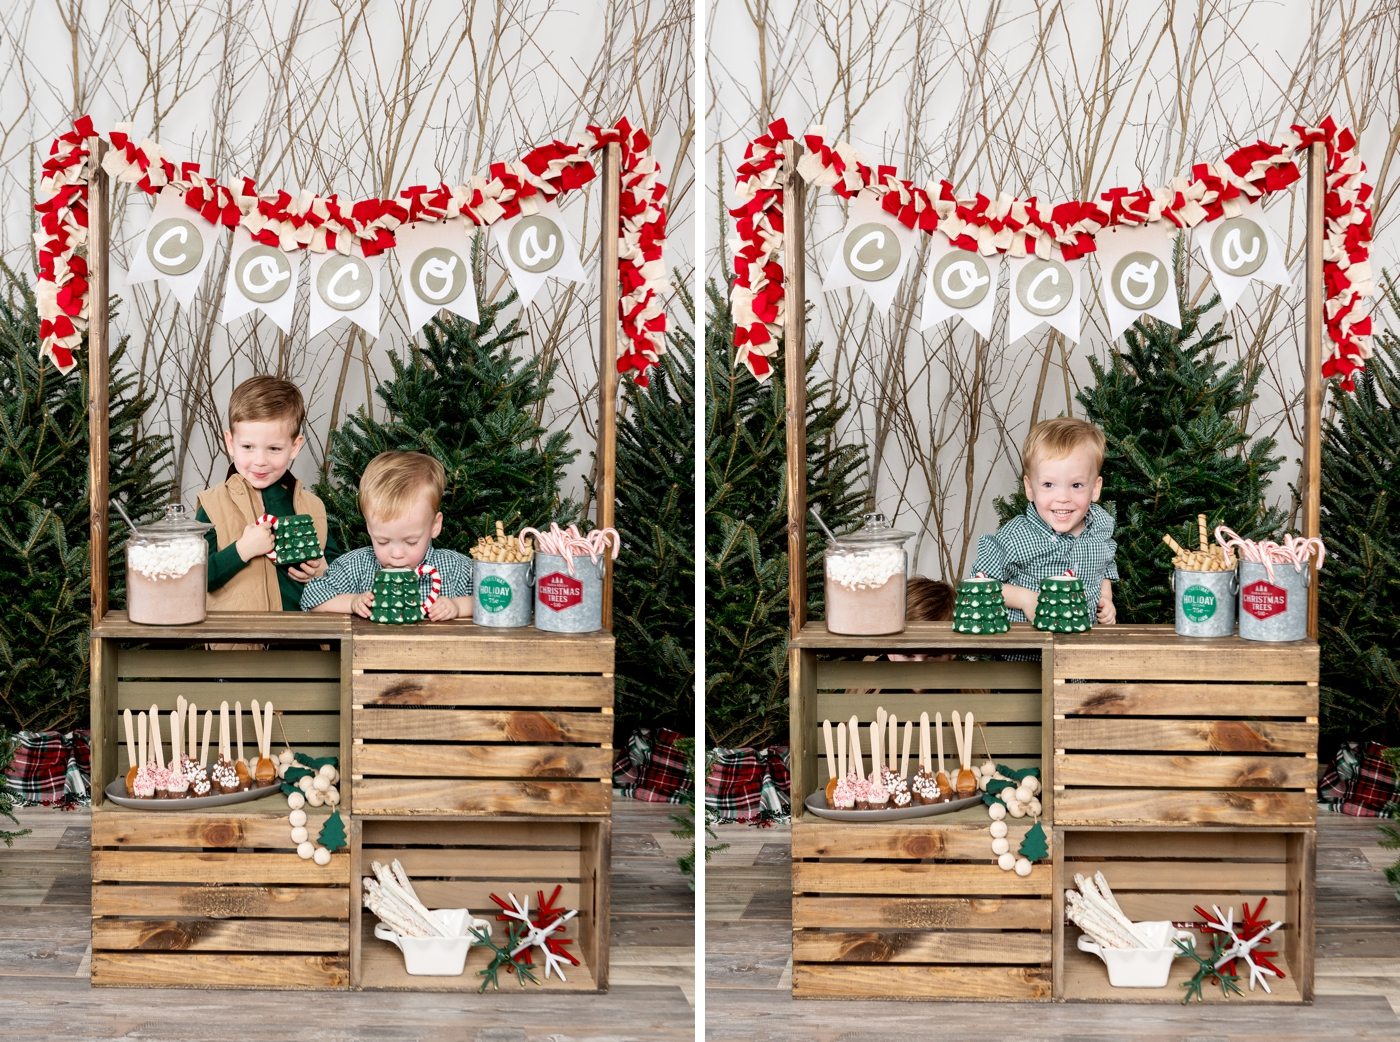 DIY hot cocoa stand for kids